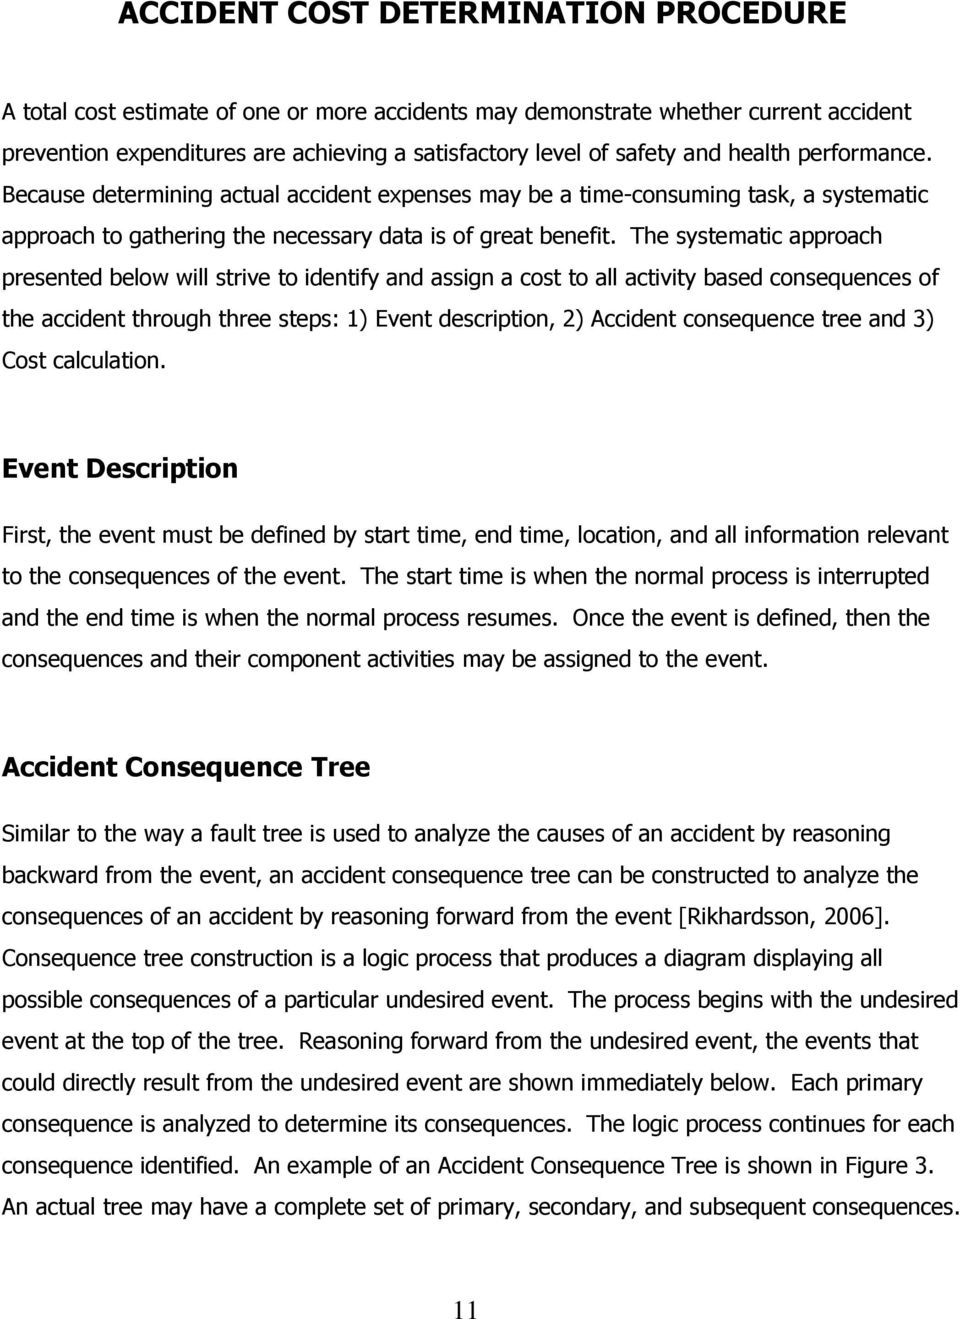 The systematic approach presented below will strive to identify and assign a cost to all activity based consequences of the accident through three steps: 1) Event description, 2) Accident consequence